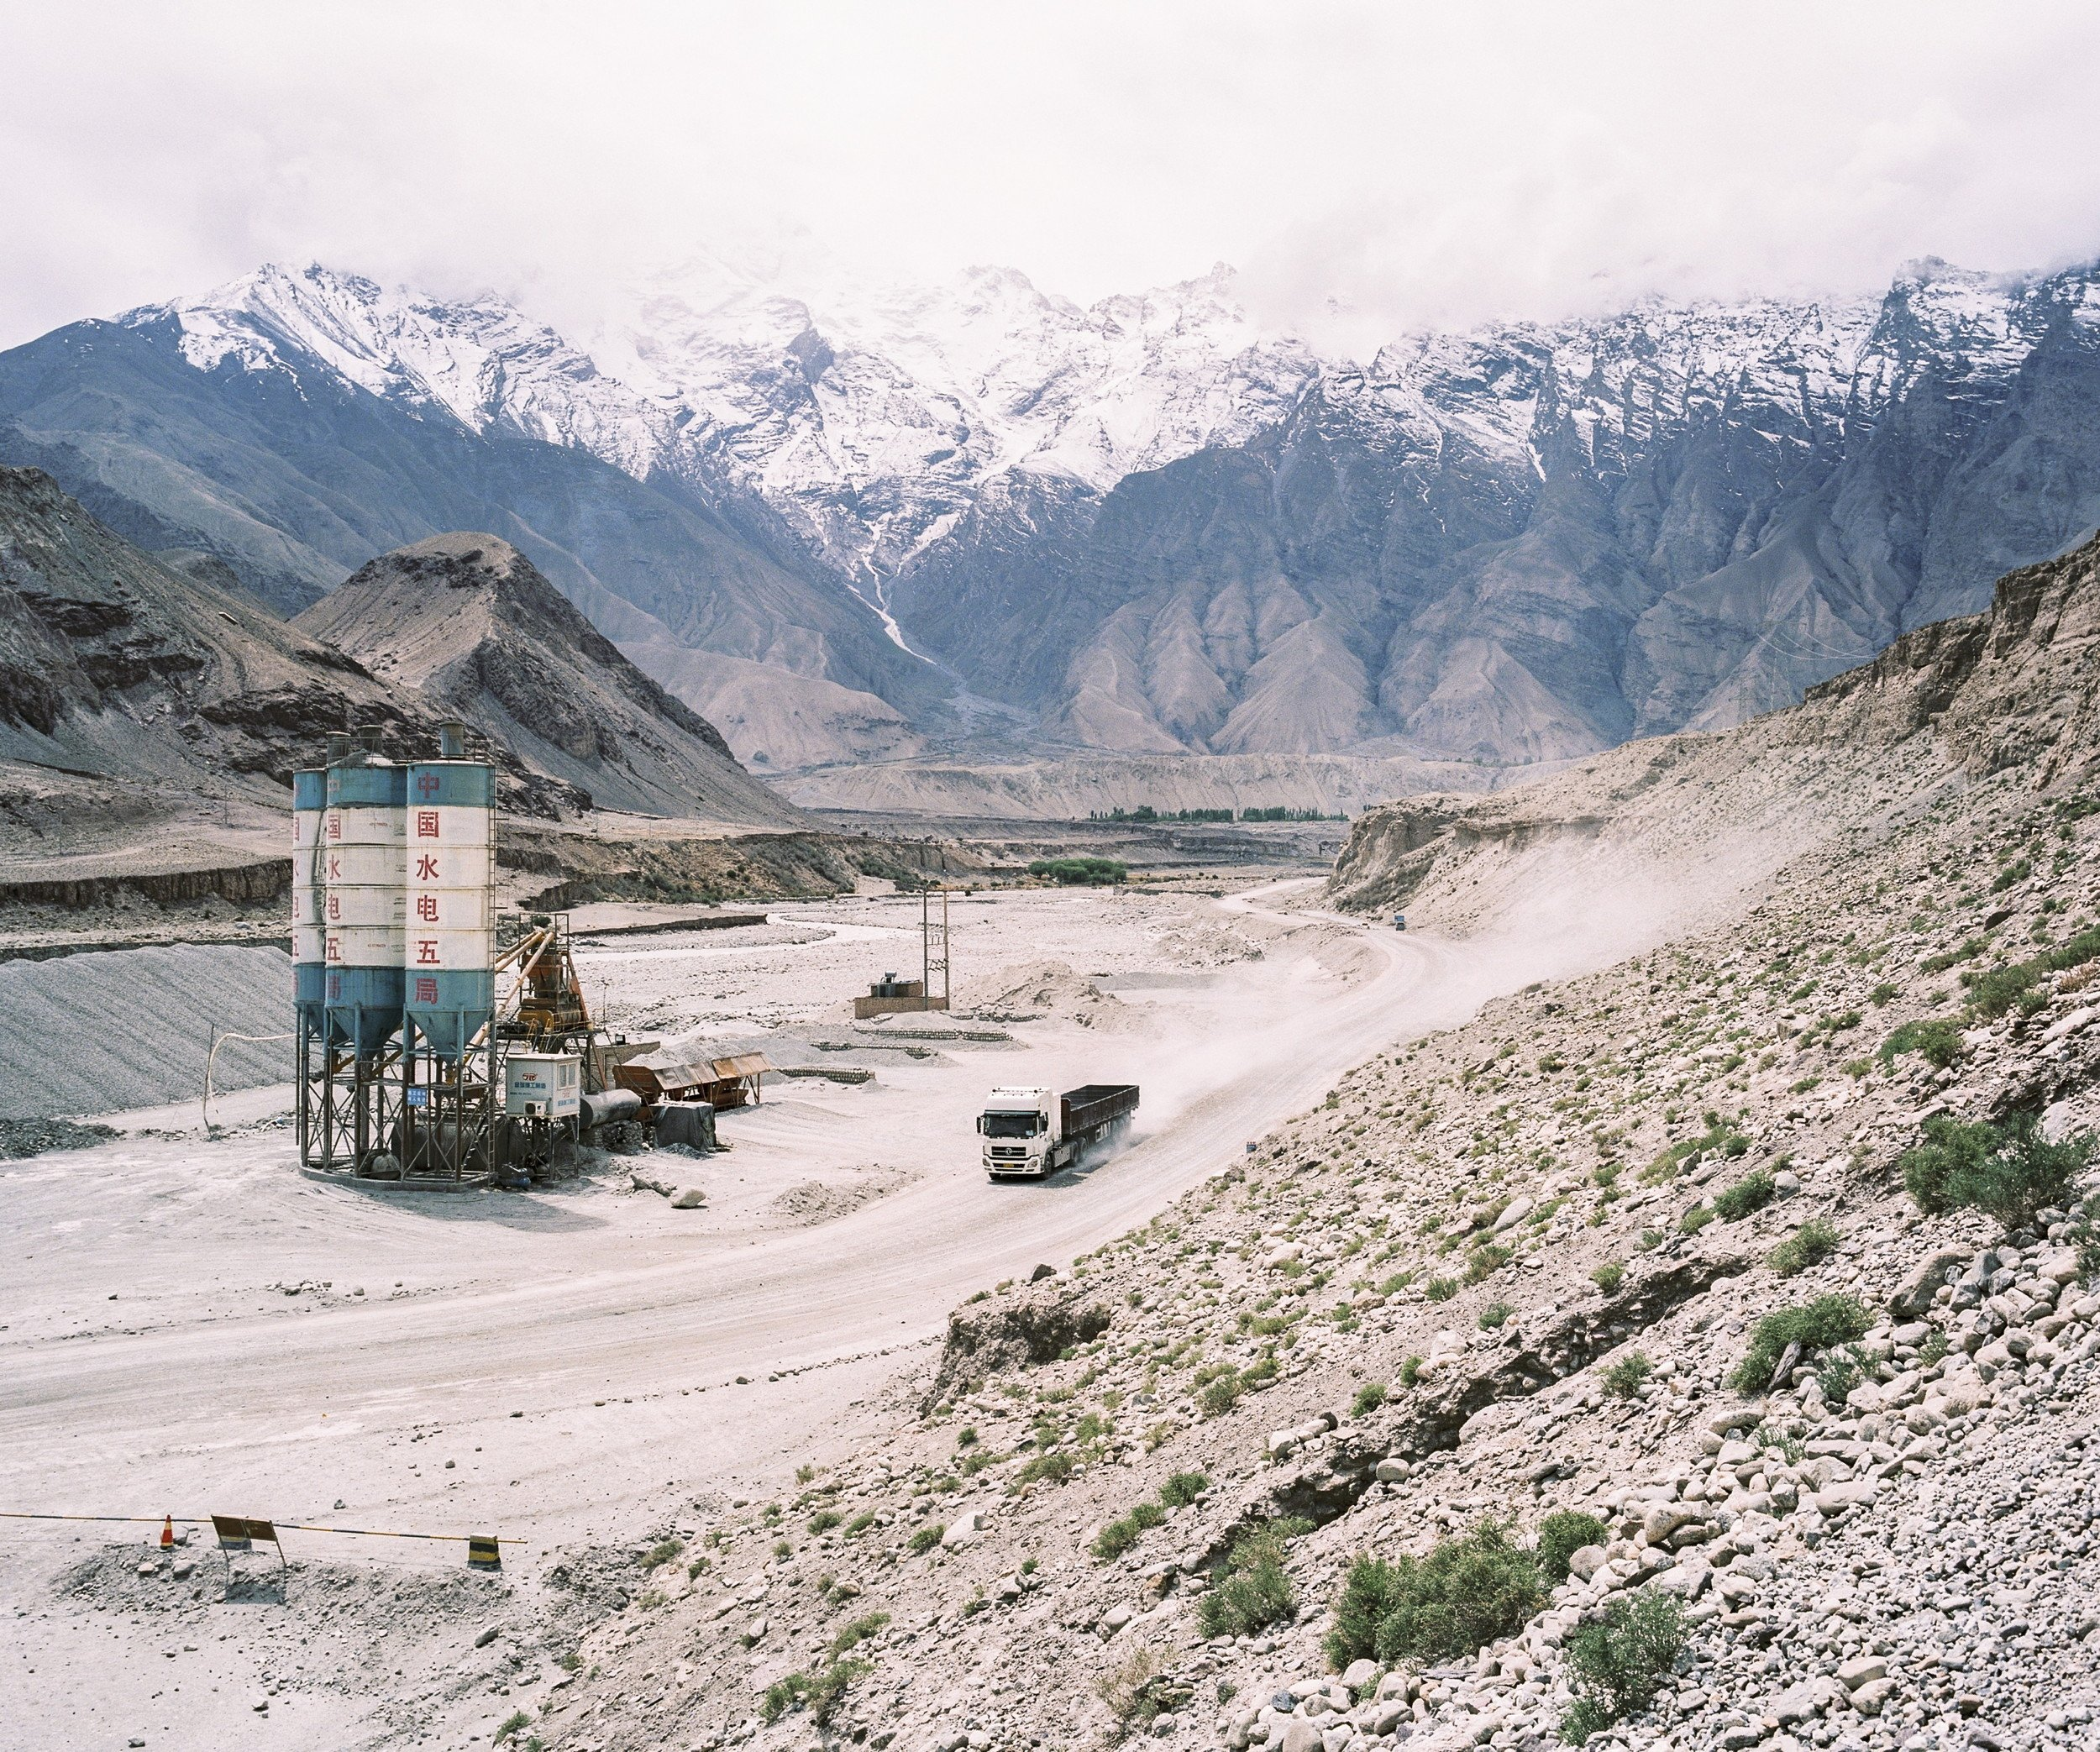 "May 2016. Xinjiang province, China. View of road G314 in China, aka the Karakoram highway, the road linking the western Chinese province of Xinjiang with Pakistan through the Pamir mountains. On the right is the Baishahu lake. A new road should be finished by 2017 to increase trade between the two countries.  Xinjiang is the westernmost province in all China, located at the border of Central Asian countries, Russia and Mongolia. More than twice the size of France, it has only 22 million inhabitants, a majority of which are the indigenous Uighurs, a sunni-muslim Turkic ethnic group which has lived in the region for centuries. Tensions have nonetheless arisen in the last decade as a consequence of the en-masse migration of Han Chinese settlers and confessional persecution by the strongly secular governmental authorities.  Borrowing from romanticized notions of the American frontier, synonymous with ideals of exploration and expansion, photographer Patrick Wack captures a visual narrative of China's westernmost region—Xinjiang. Whereas the American West conjures images of cowboys and pioneers, of manifest destiny and individualistic freedom, the Chinese West has not yet been so defined. It is a place of pluralities—of haunting, expansive landscapes, of rough mountains and vivid lakes, of new construction and oil fields, of abandoned structures in decaying towns, of devout faith and calls to prayer, of silence and maligned minorities, of opportunity and uncertain futures. It is a land of shifting identity. In essence, Xinjiang is the new frontier to be conquered and pondered. Literally translating to ""new frontier"" in Chinese, Xinjiang is a land apart, and has been so for centuries. More than twice the land area of France with a population less than the city of Shanghai, the Chinese province of Xinjiang once connected China to Central Asia and Europe as the first leg of the ancient Silk Road. Yet it remains physically, culturally, and politically distinct, an otherness within modern China. Its infinite sense of space; its flowing Arabic scripts and mosque-filled cityscapes; its designation as an autonomous region; and simmering beneath, its uneasy relationship with the encroaching, imposing, surveilling East. For China's ethnic Han majority, Xinjiang is once again the new frontier, to be awakened for Beijing's new Silk Road—China's own manifest destiny—with the promise of prosperity in its plentiful oil fields. For Patrick Wack, Out West is as a much a story of the region as it is his own, as much a documentation of a contemporary and historical place as it is an emotional journey of what it means to strive, and for what. There exists an inherent fascination in the region—as both key and foil to the new China—and a siren's call to its vast limitlessness that instinctively incites introspection and desire. Showcasing a romanticism of the frontier, Out West presents Xinjiang via the lens of its present day, in photography that speaks of the surrealistic tranquility—and disquiet—of the unknown. Out West offers an experience of Xinjiang that highlights its estrangement from contemporary perceptions of the new China, accentuating undercurrents of tension and the mystique it has cultivated—whether in their minds or ours. At its core, Out West is a question of perspective: What is the West but the East to another?"